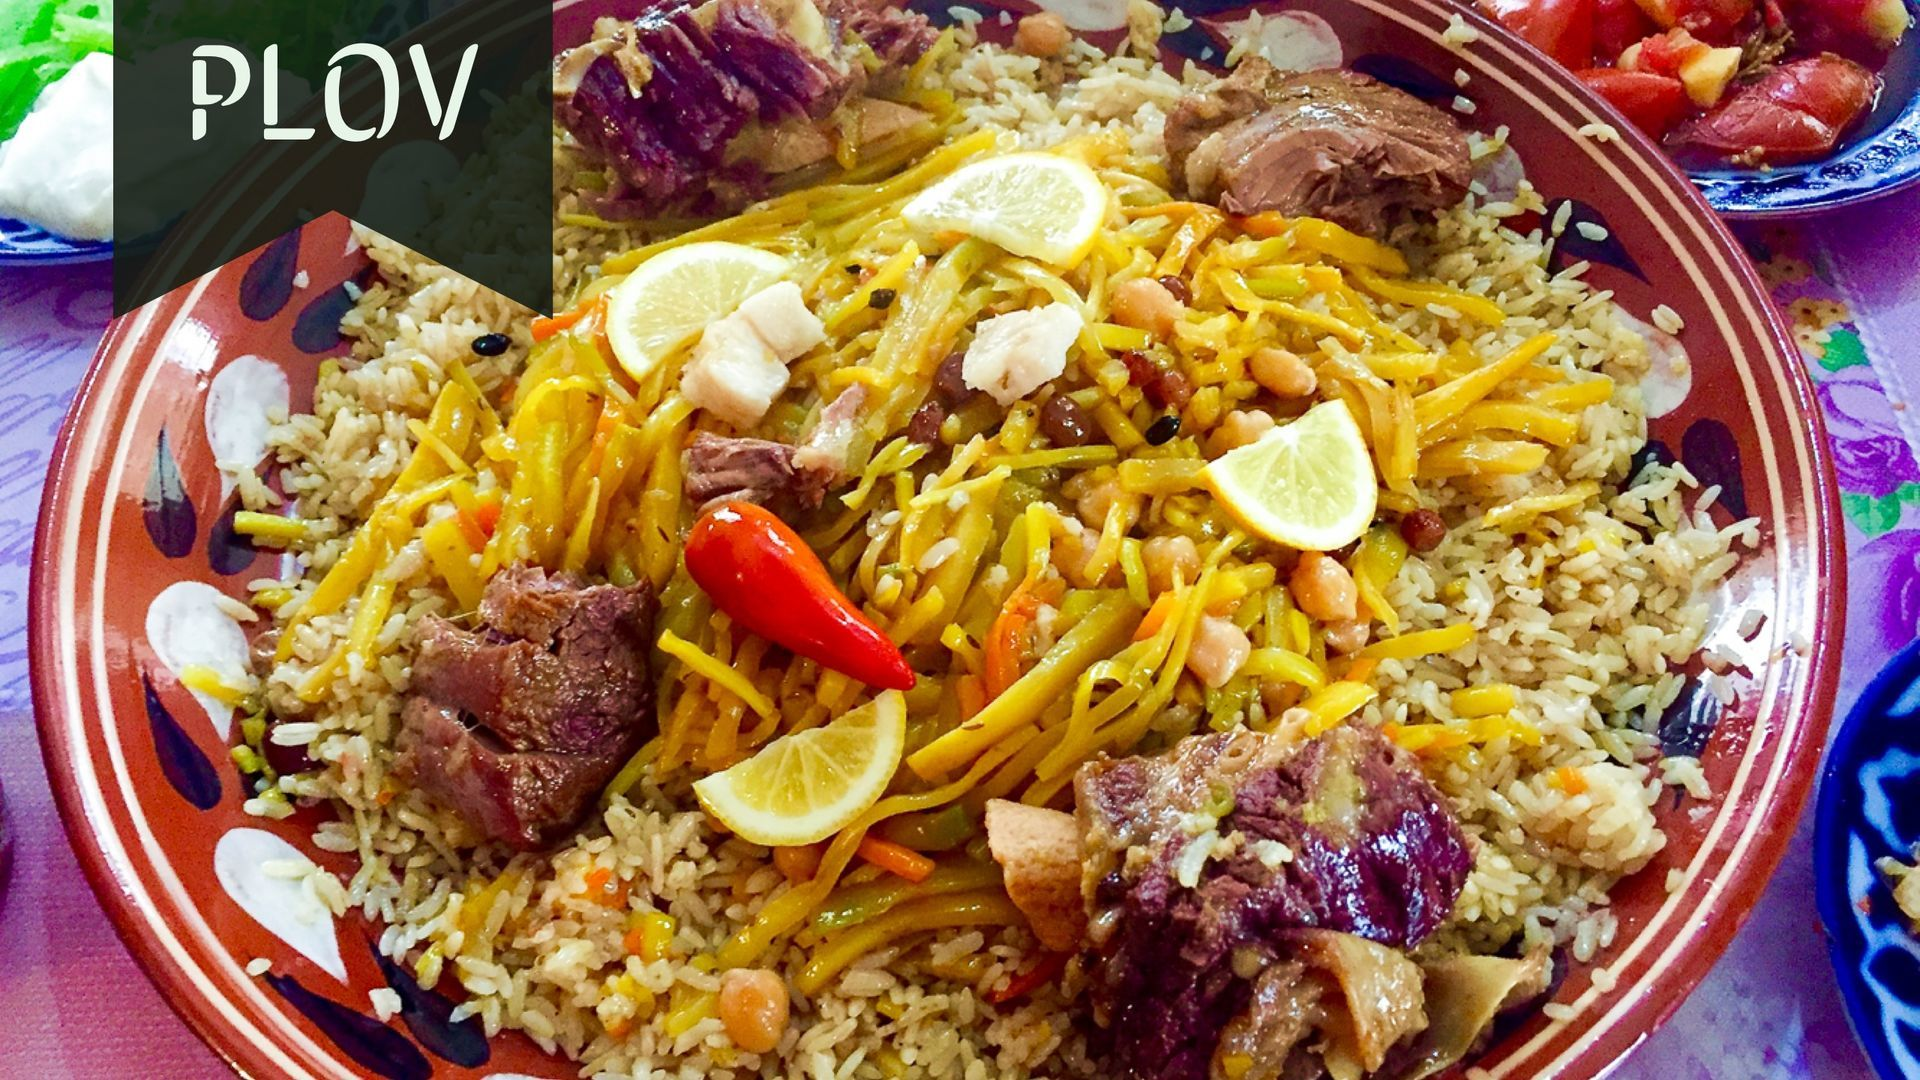 Plov in Central Asian cuisine